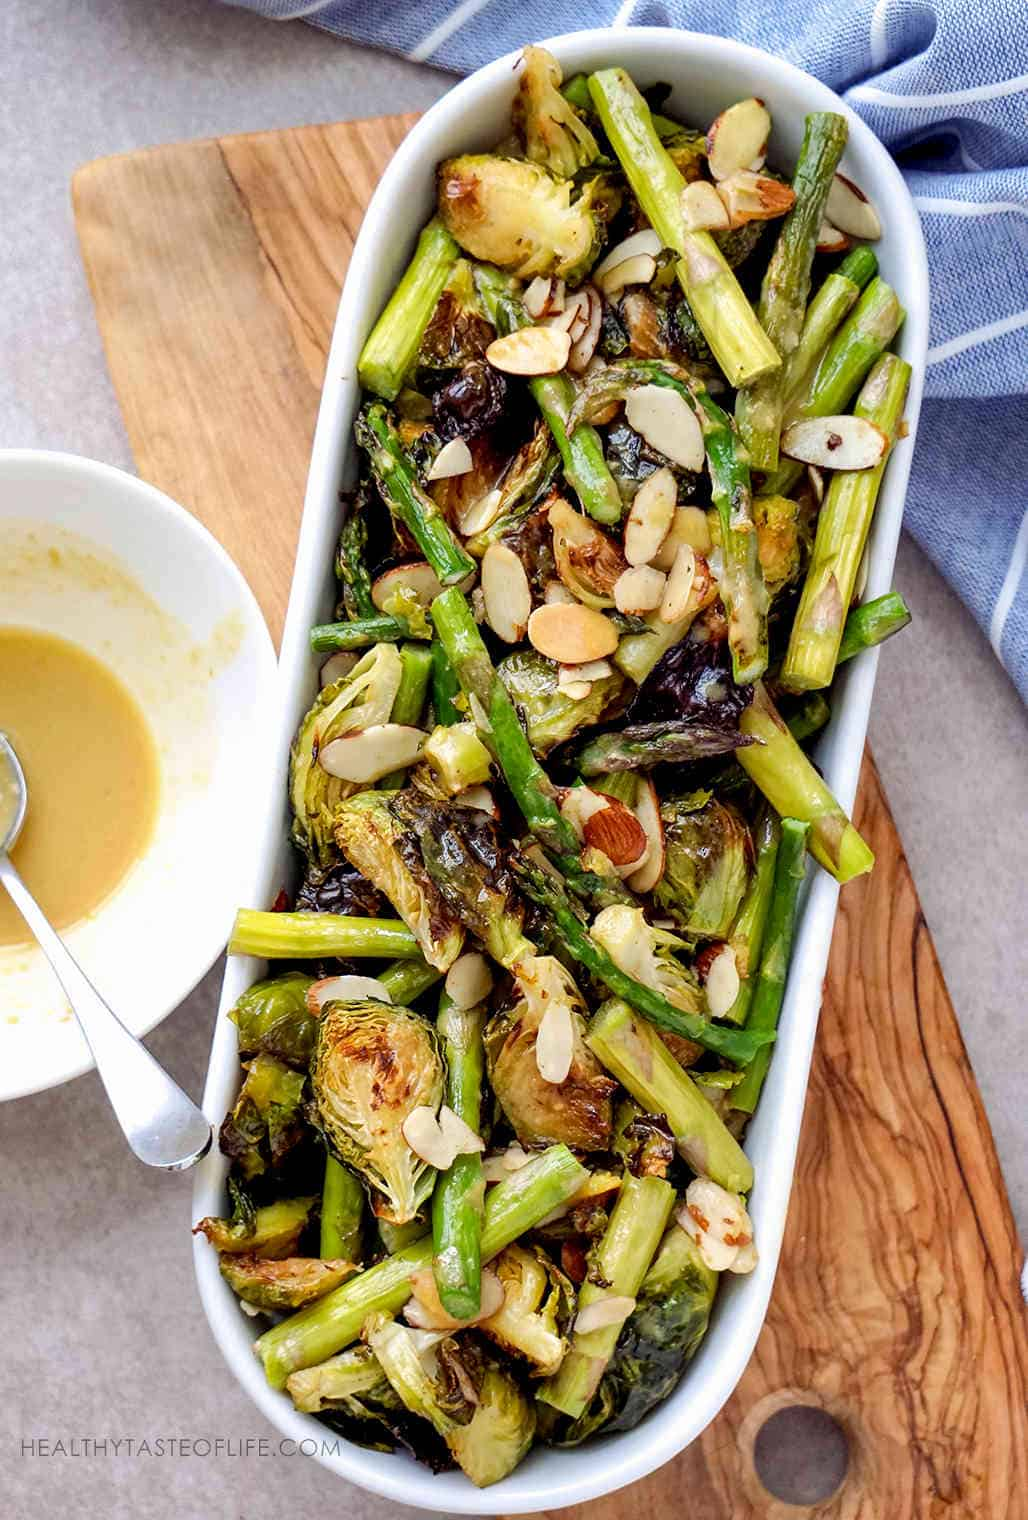 Oven Roasted Brussels Sprouts Asparagus Almonds with a lemon maple mustard sauce  (Vegan Recipe)